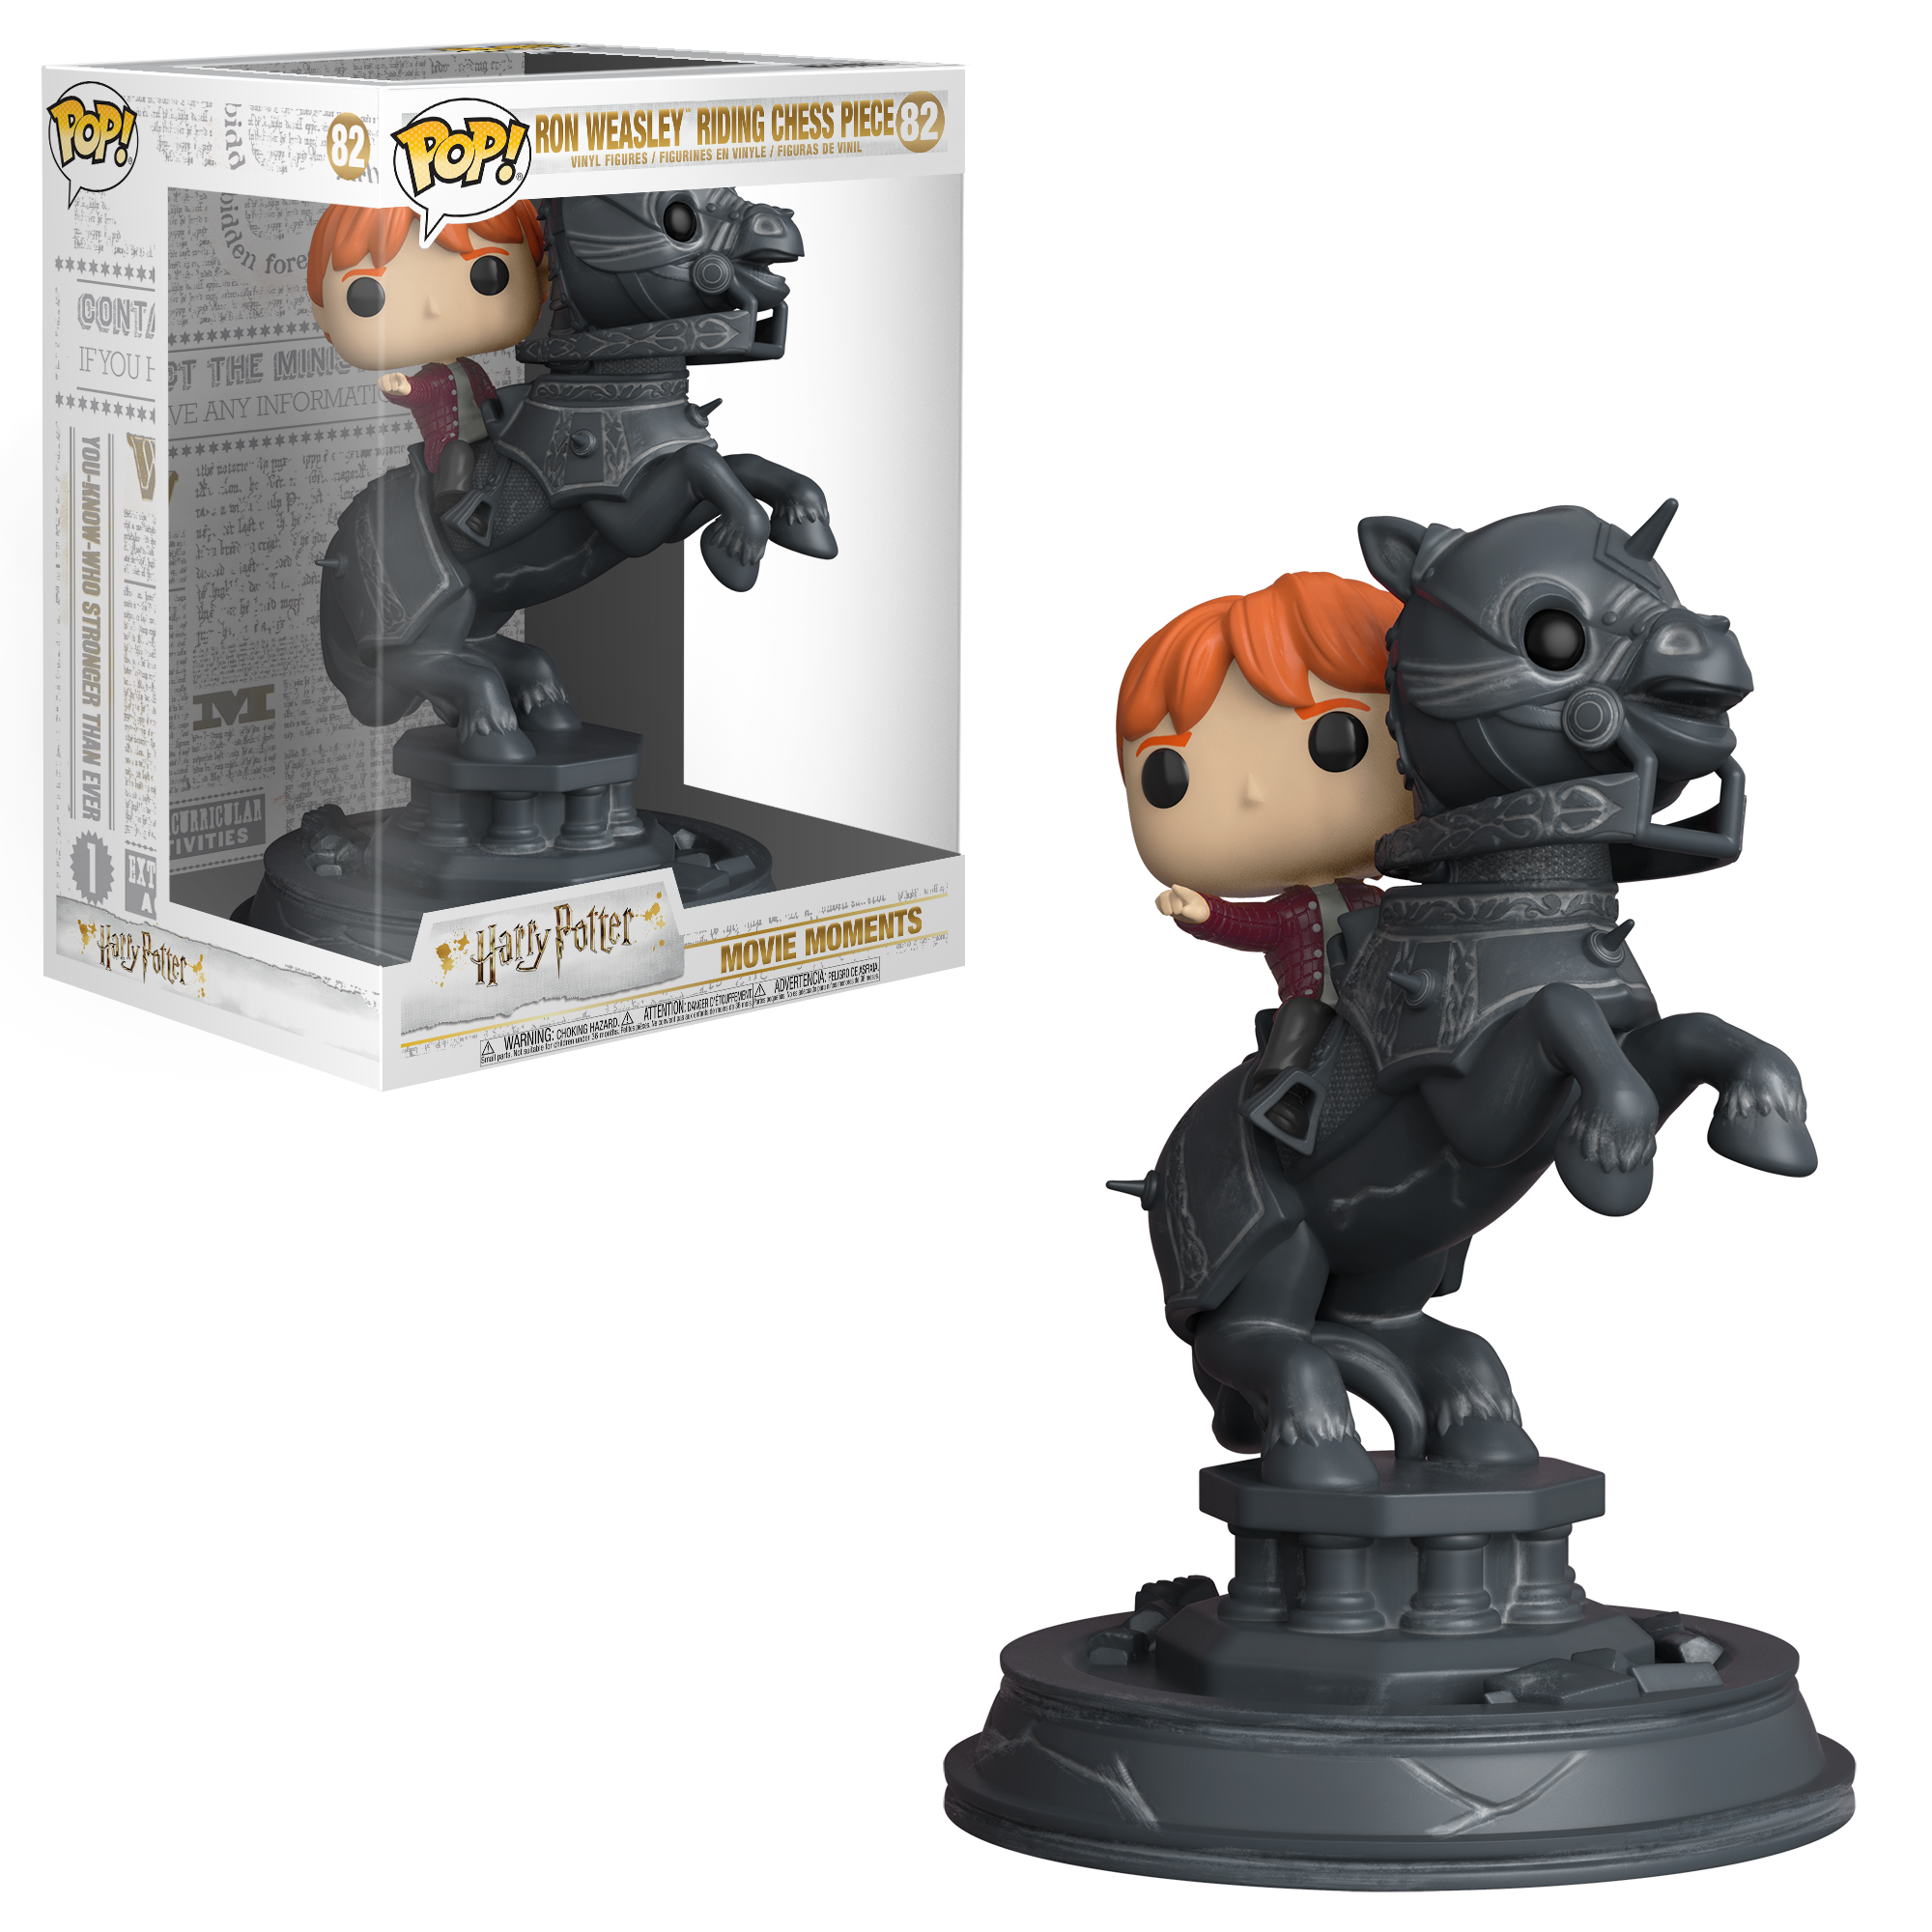 Funko POP! Movie Moment: Harry Potter: S5 - Ron Riding Chess Piece